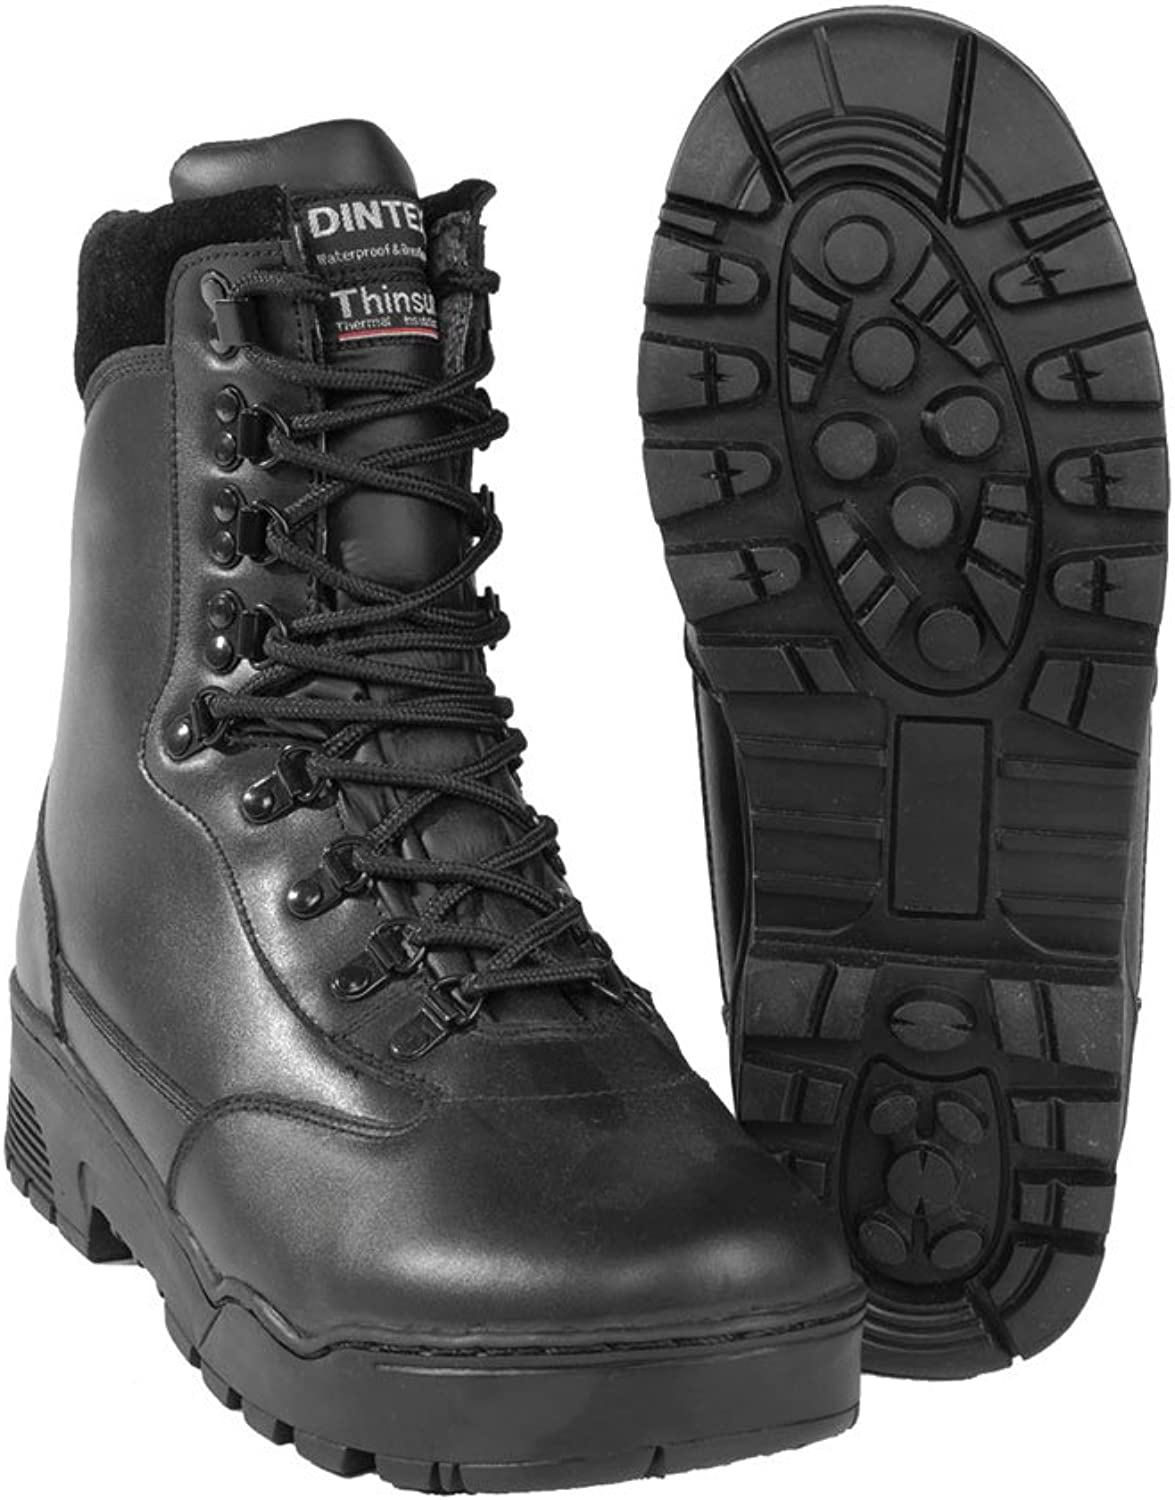 Mil-Tec Waterproof Tactical Leather Boots